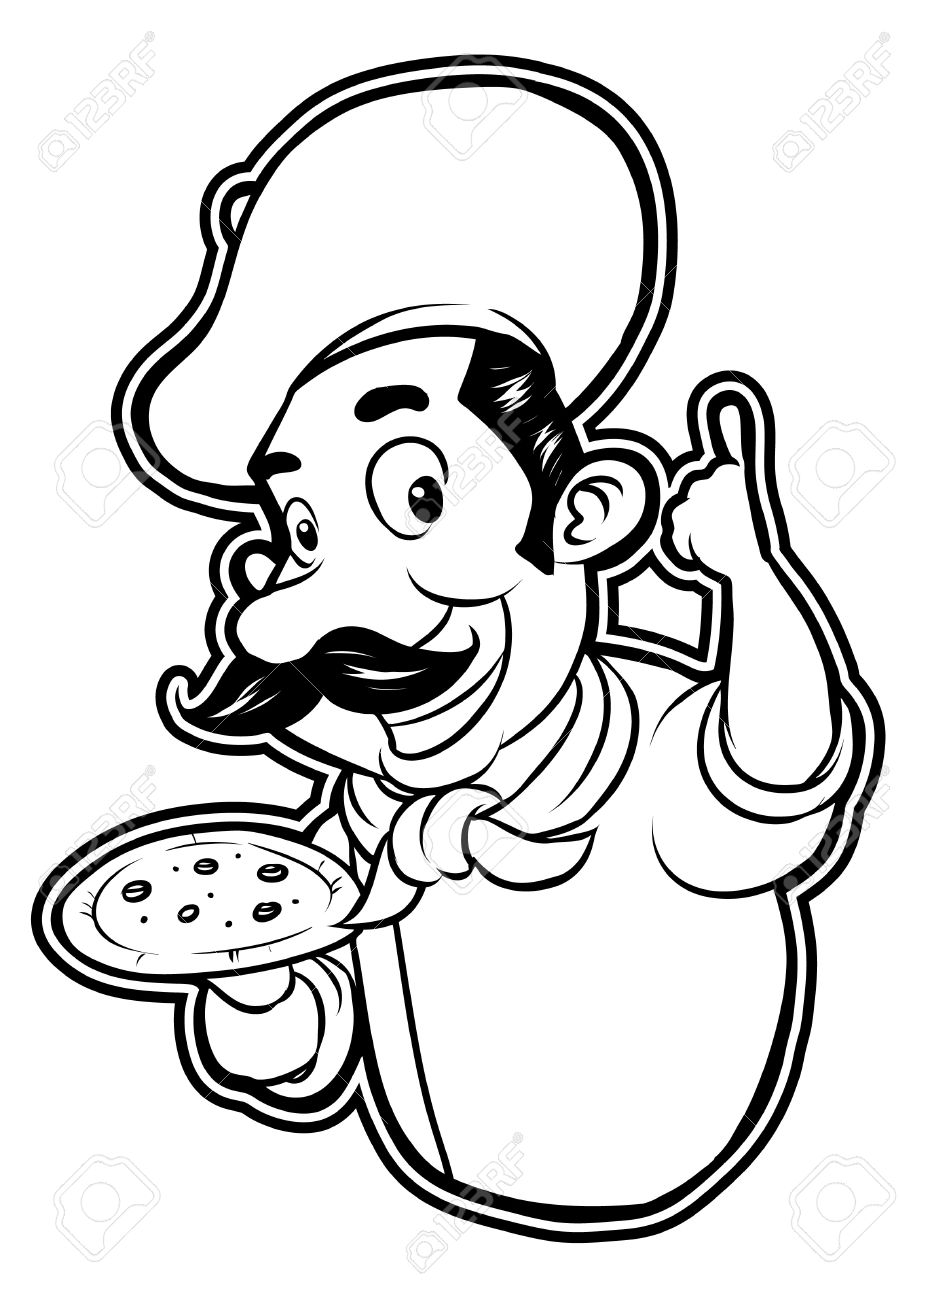 Black And White Clipart Pizza Chef Royalty Free Cliparts, Vectors.